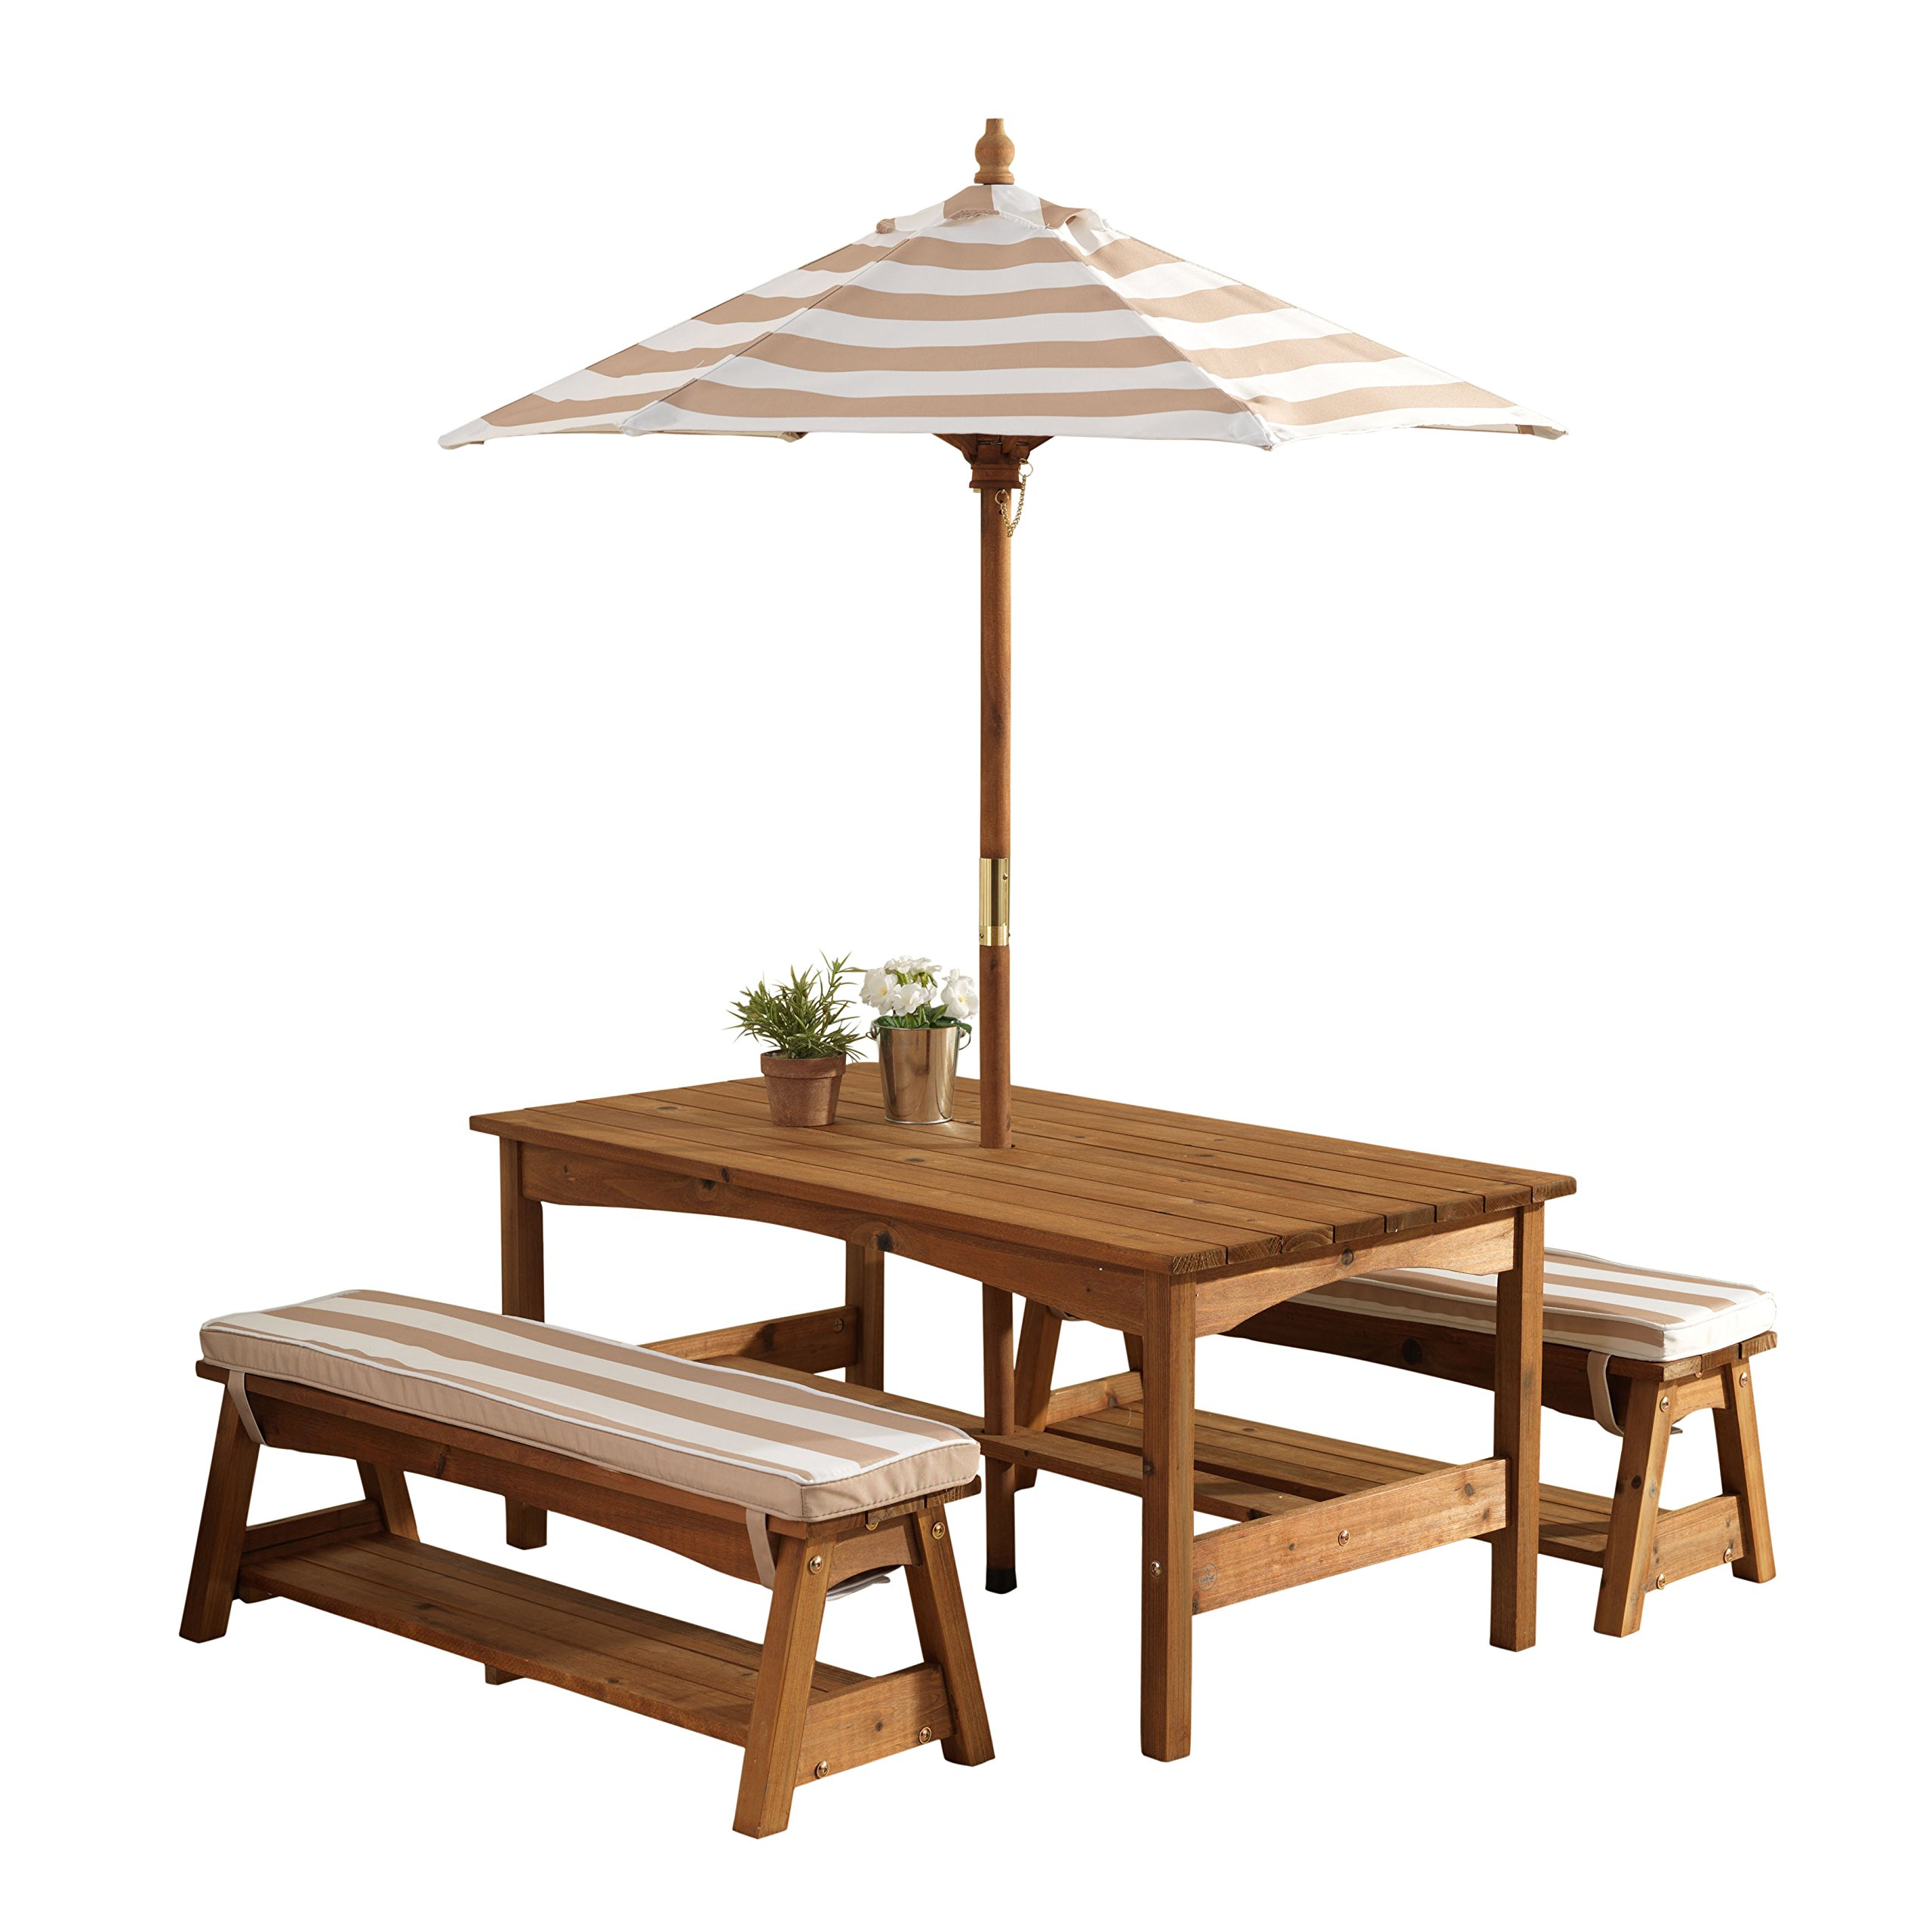 KidKraft 00 Outdoor Table and Bench Set with Cushions and Umbrella, Espresso with Oatmeal and White Striped Fabric by KidKraft